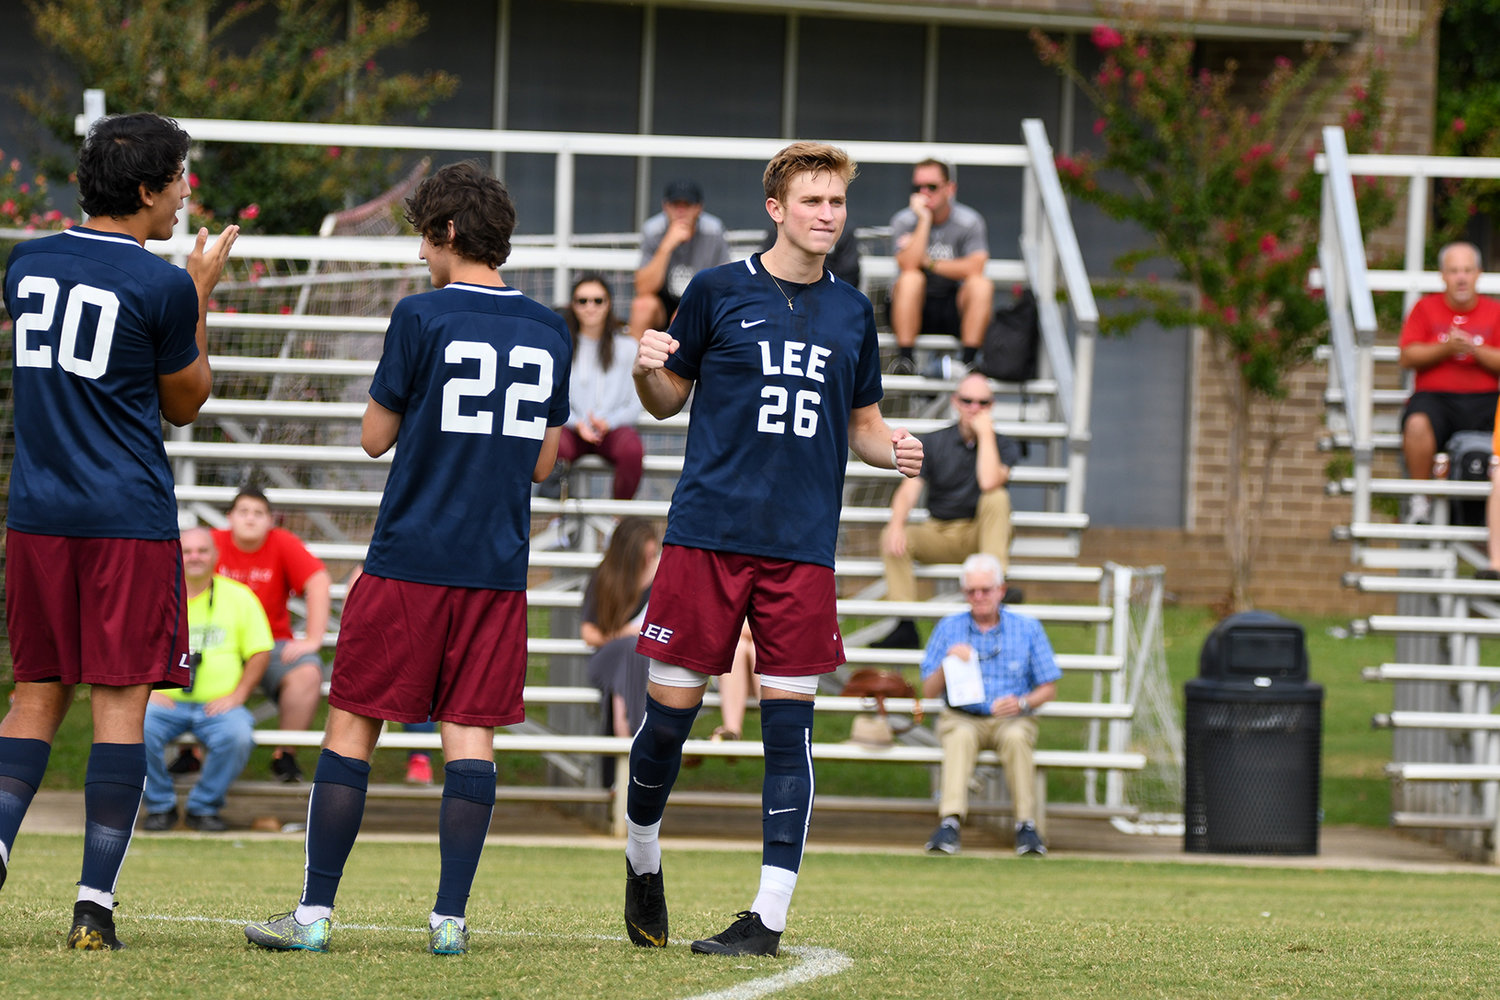 CADEN CORRAO and the Lee University Flames got a much needed road win at CBU, in Memphis, Sunday.